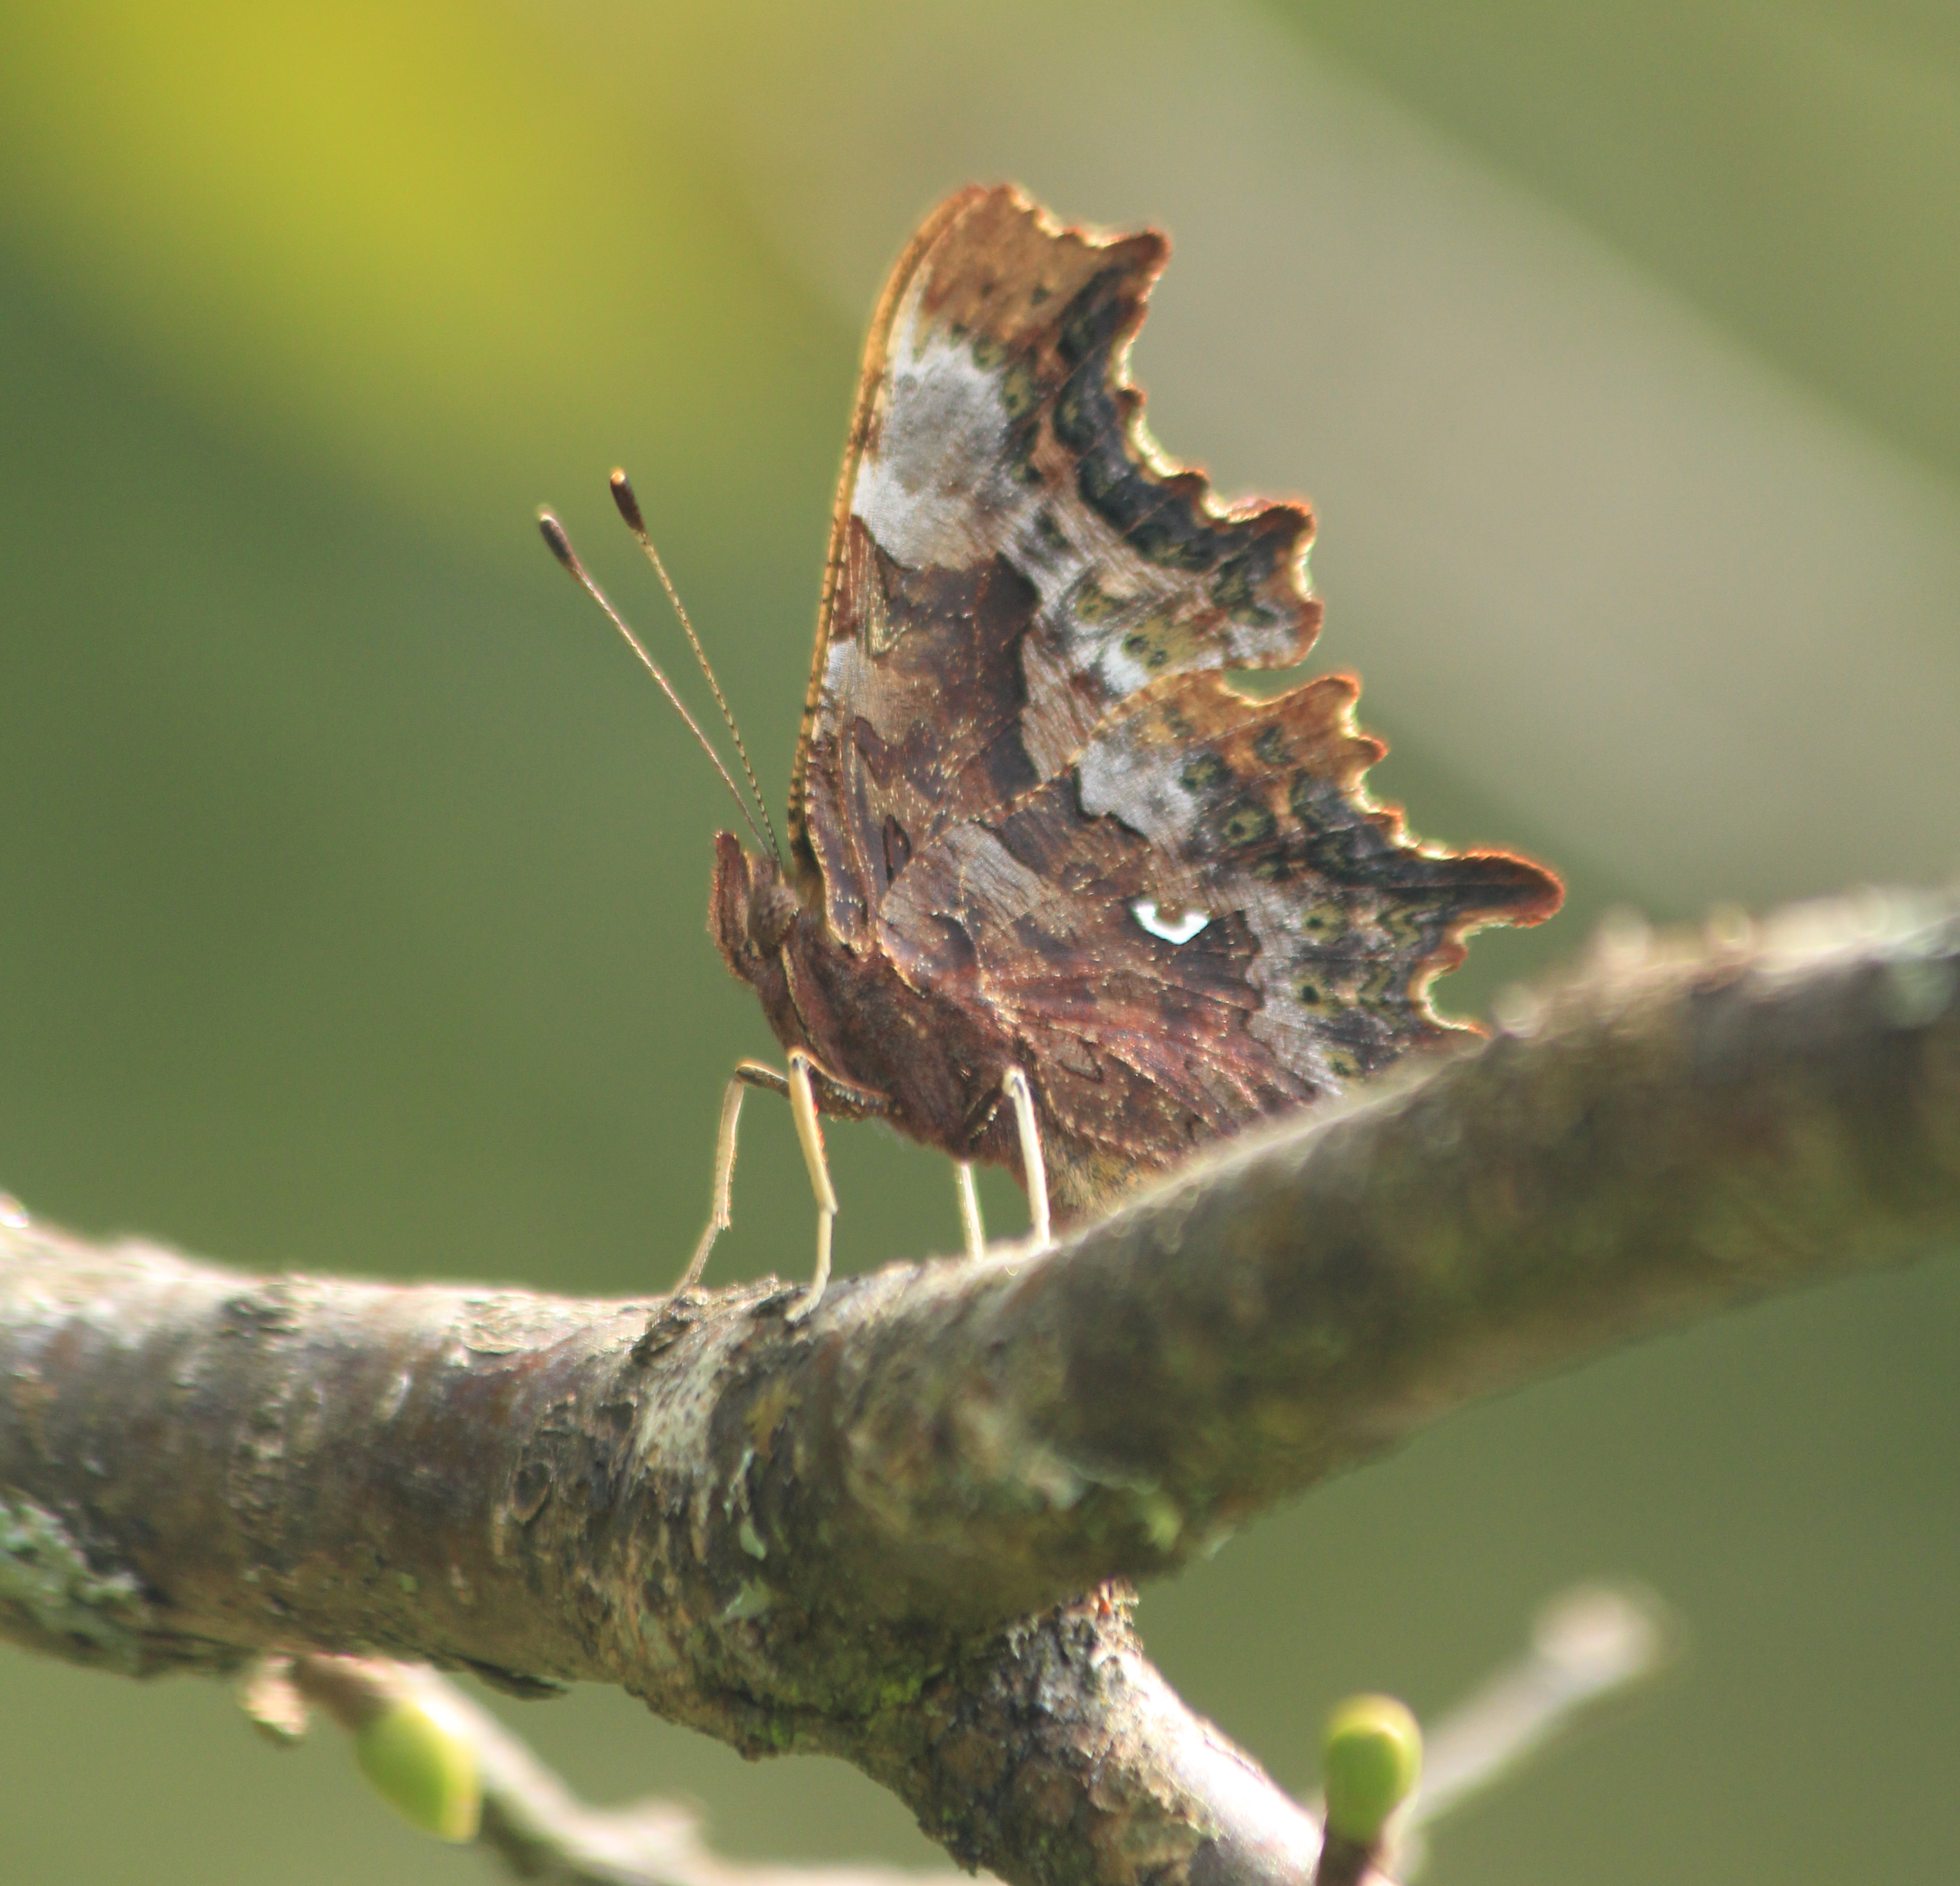 Comma butterfly, Polygonia c-album. Showing underwing. Credit Andrew Bladon